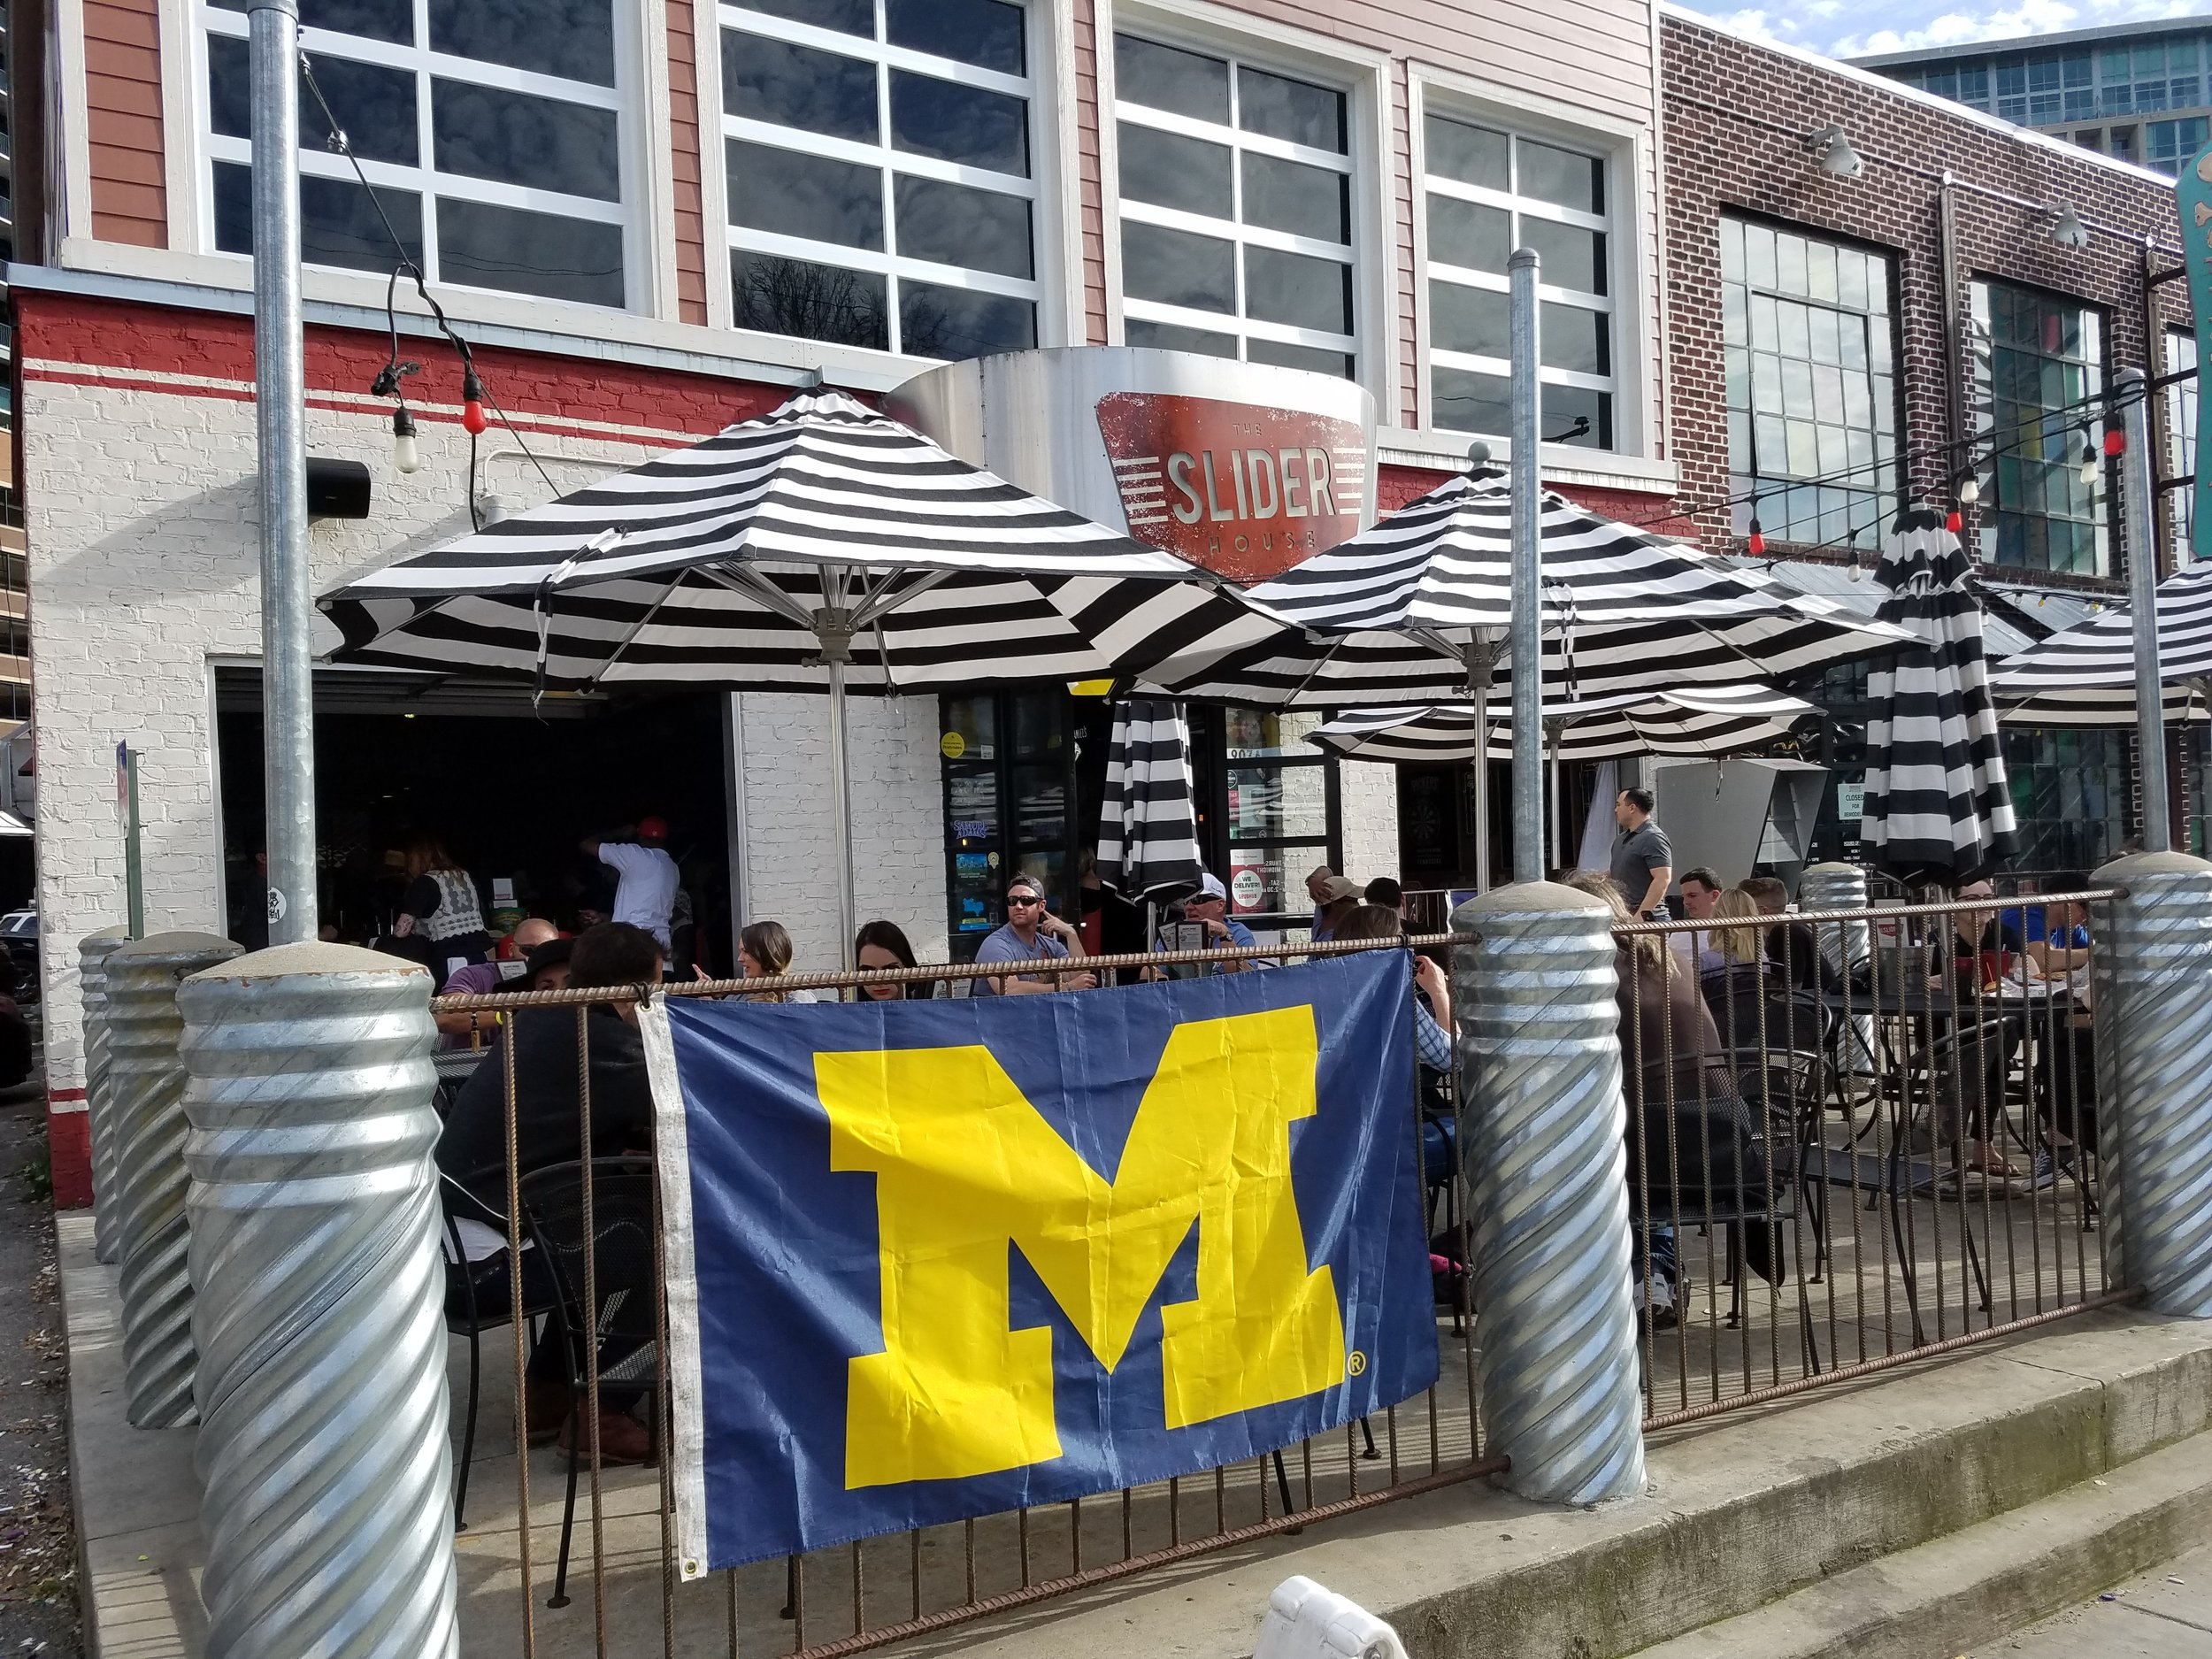 Wolverine Nation was well represented at The Slider House in Nashville during Saturday's Final Four